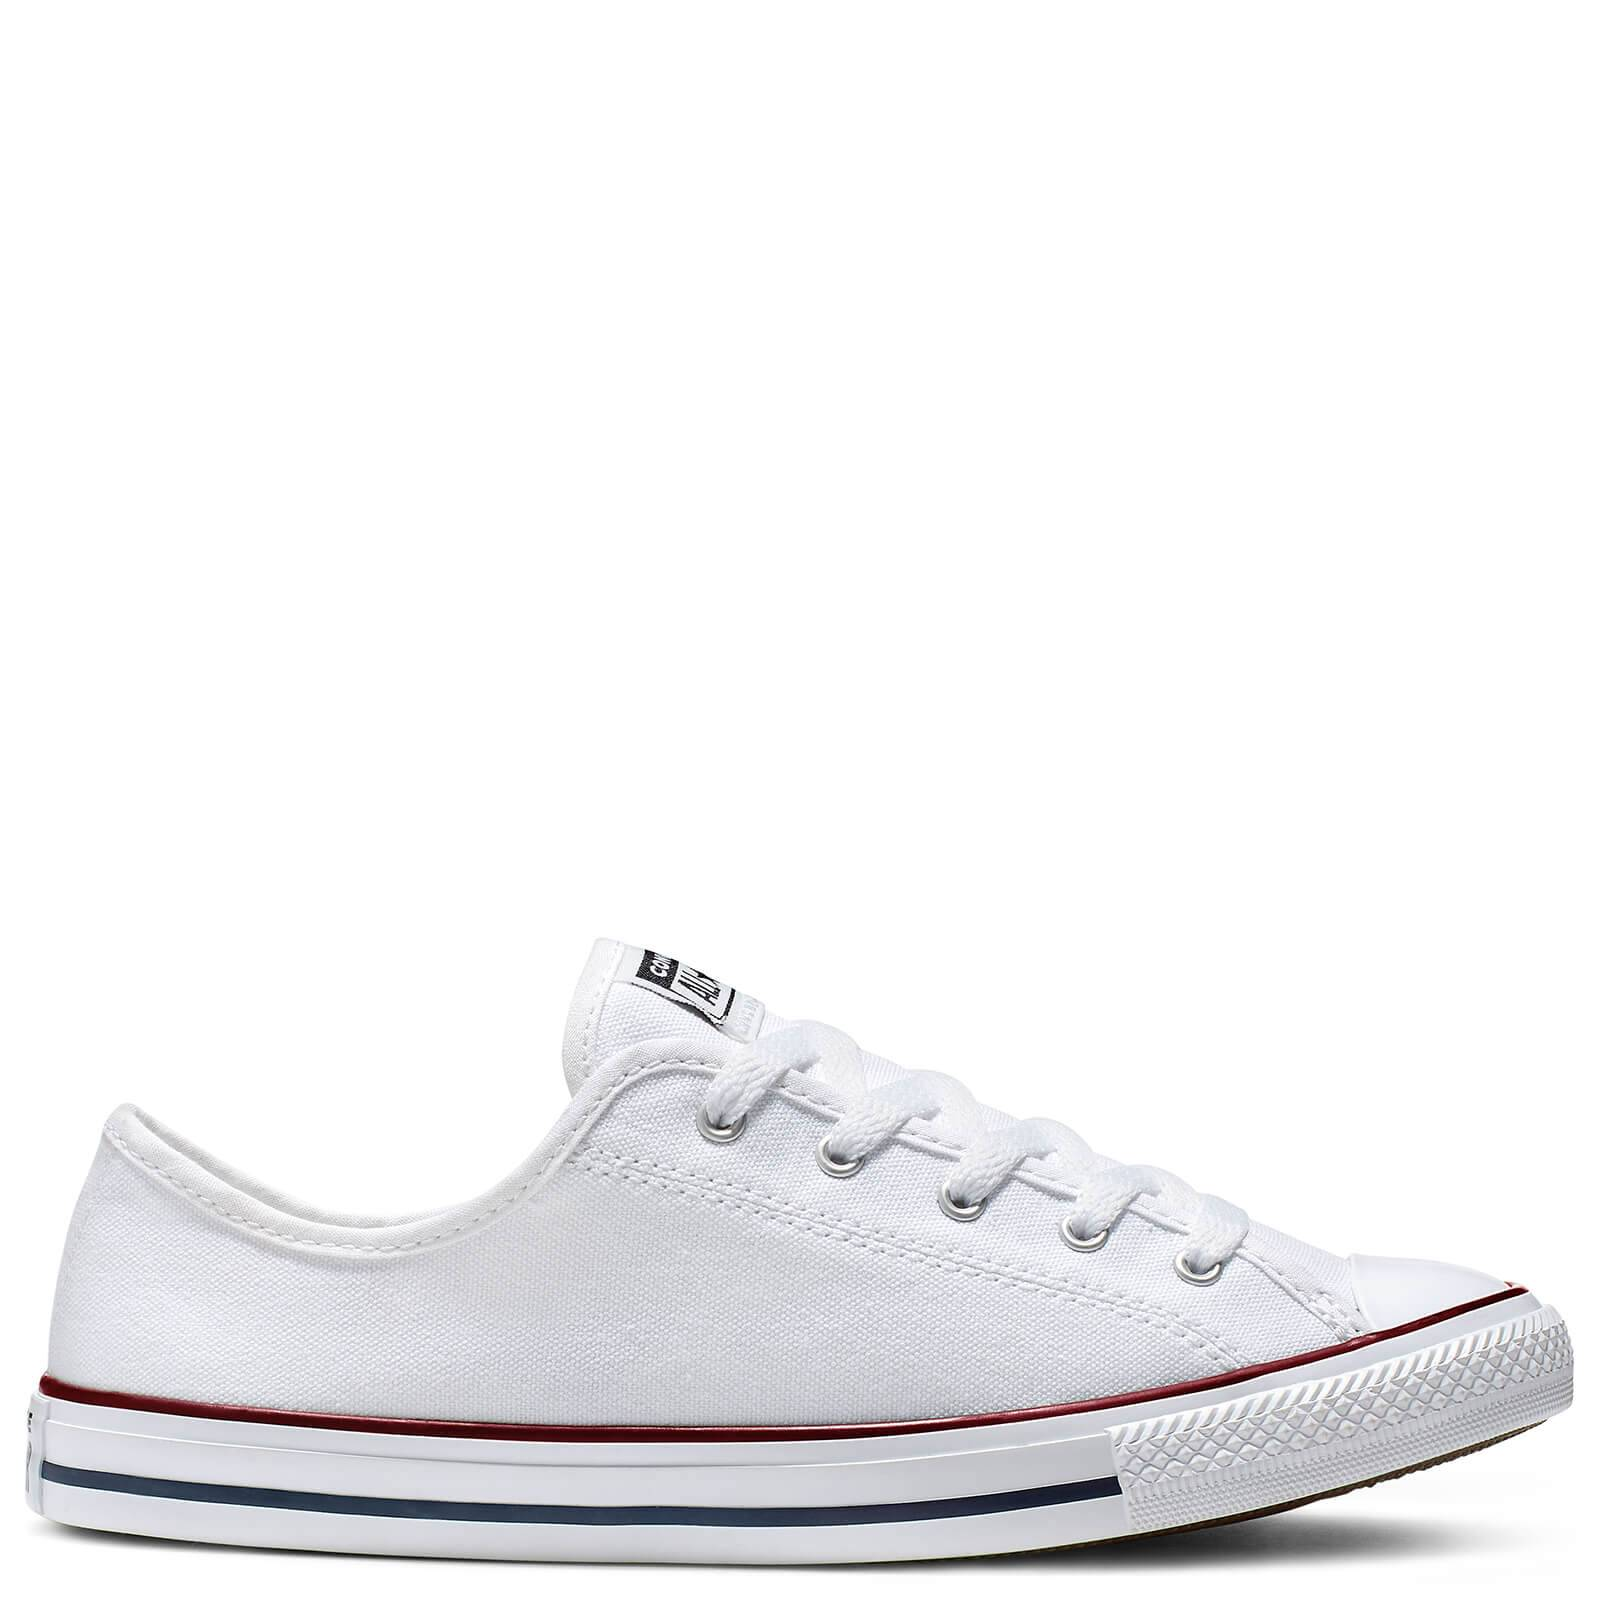 Converse Women's Chuck Taylor All Star Dainty Basic Canvas Ox Trainers - White/Red/Blue - UK 7 - White